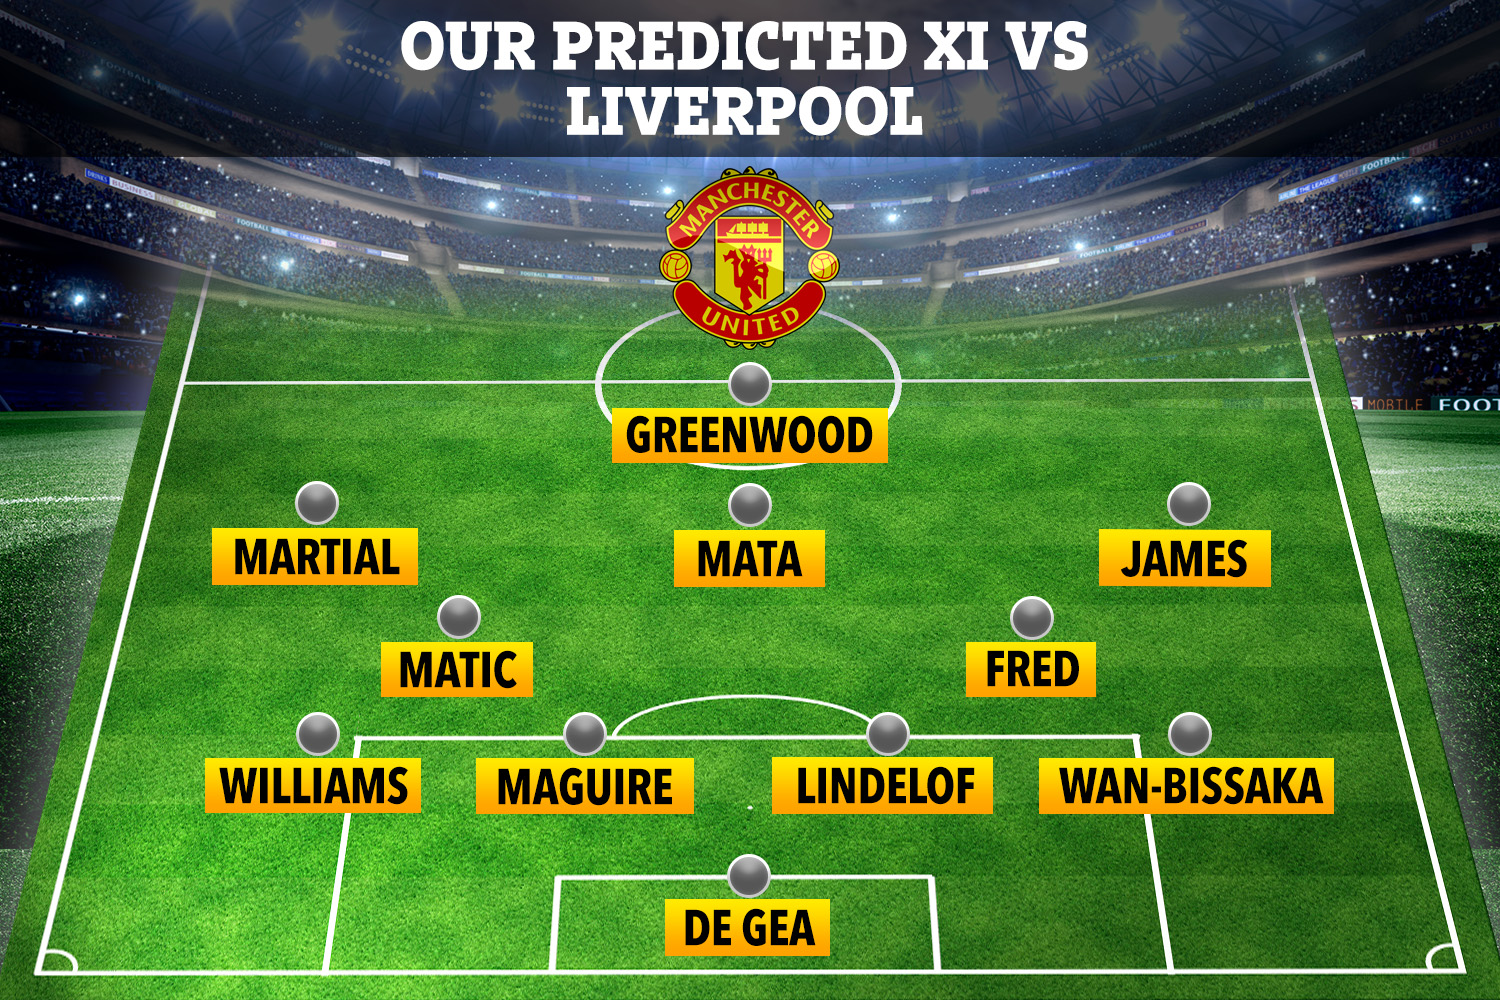 This is how SunSport reckons Manchester United could line up against Liverpool